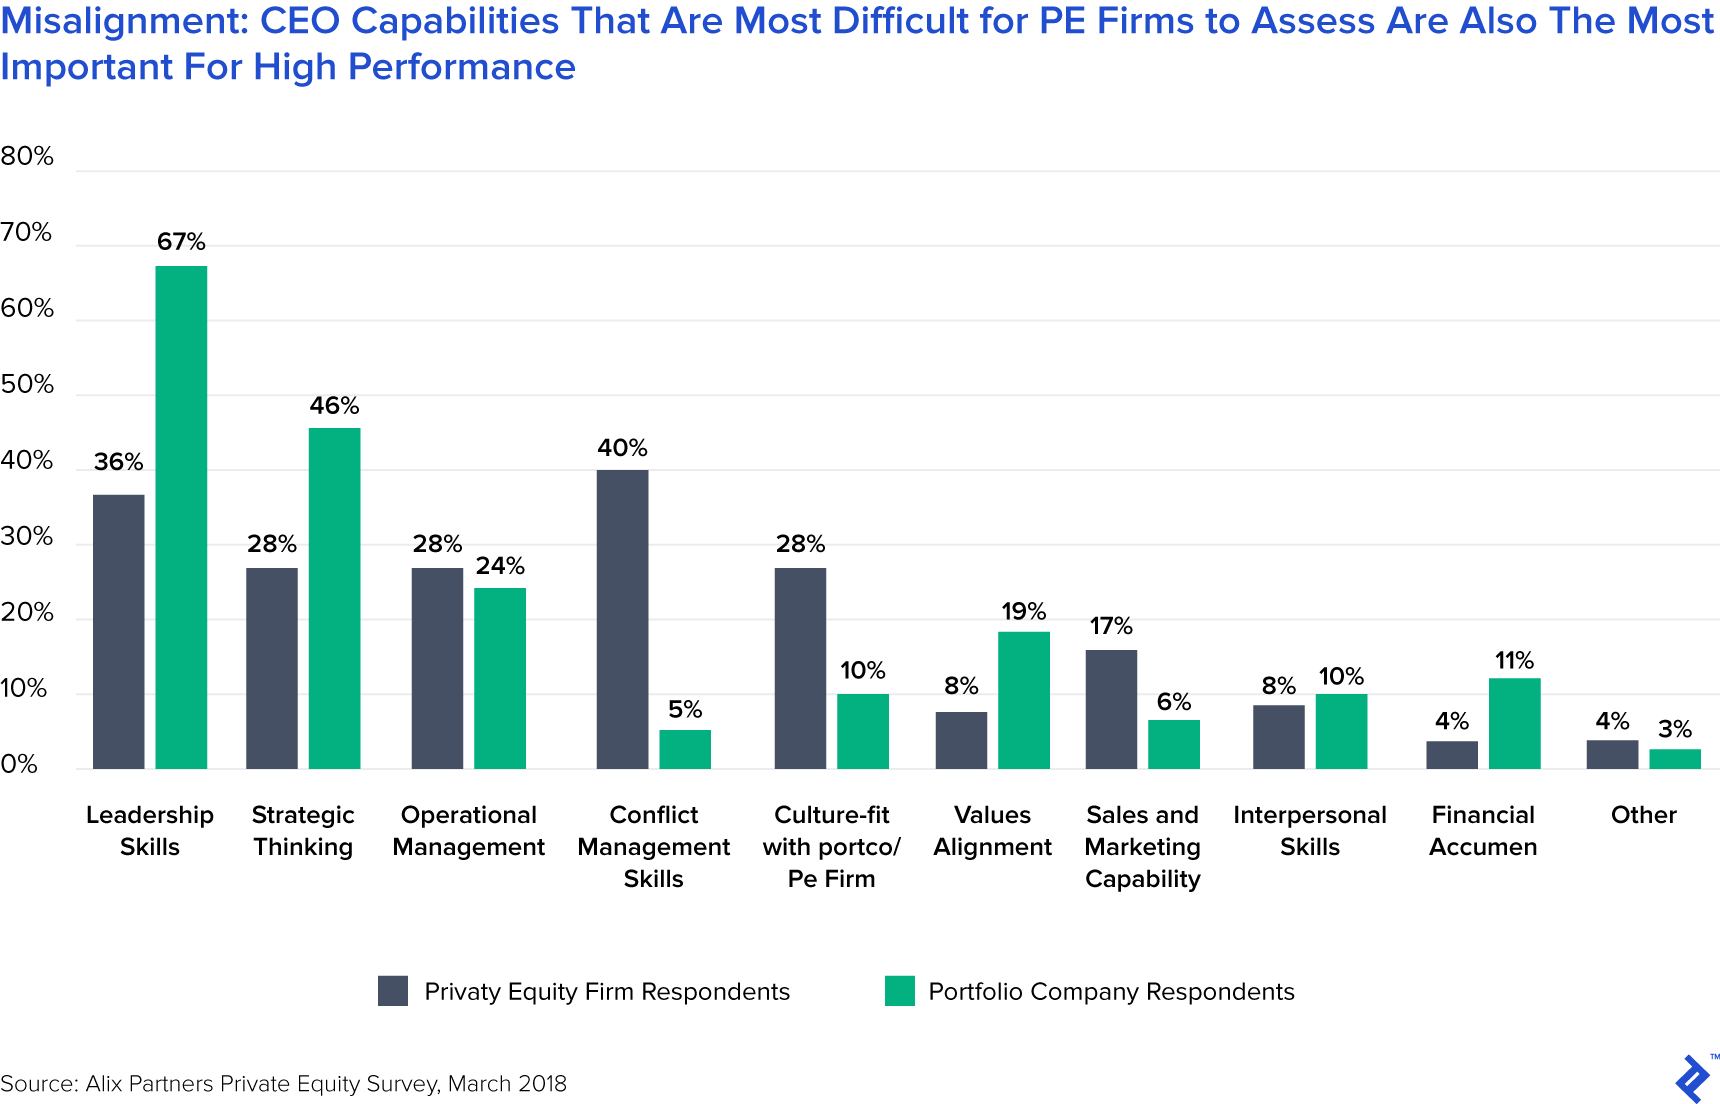 Misalignment: CEO Capabilities That Are Most Difficult for PE Firms to Assess Are Also the Most Important for High Performance